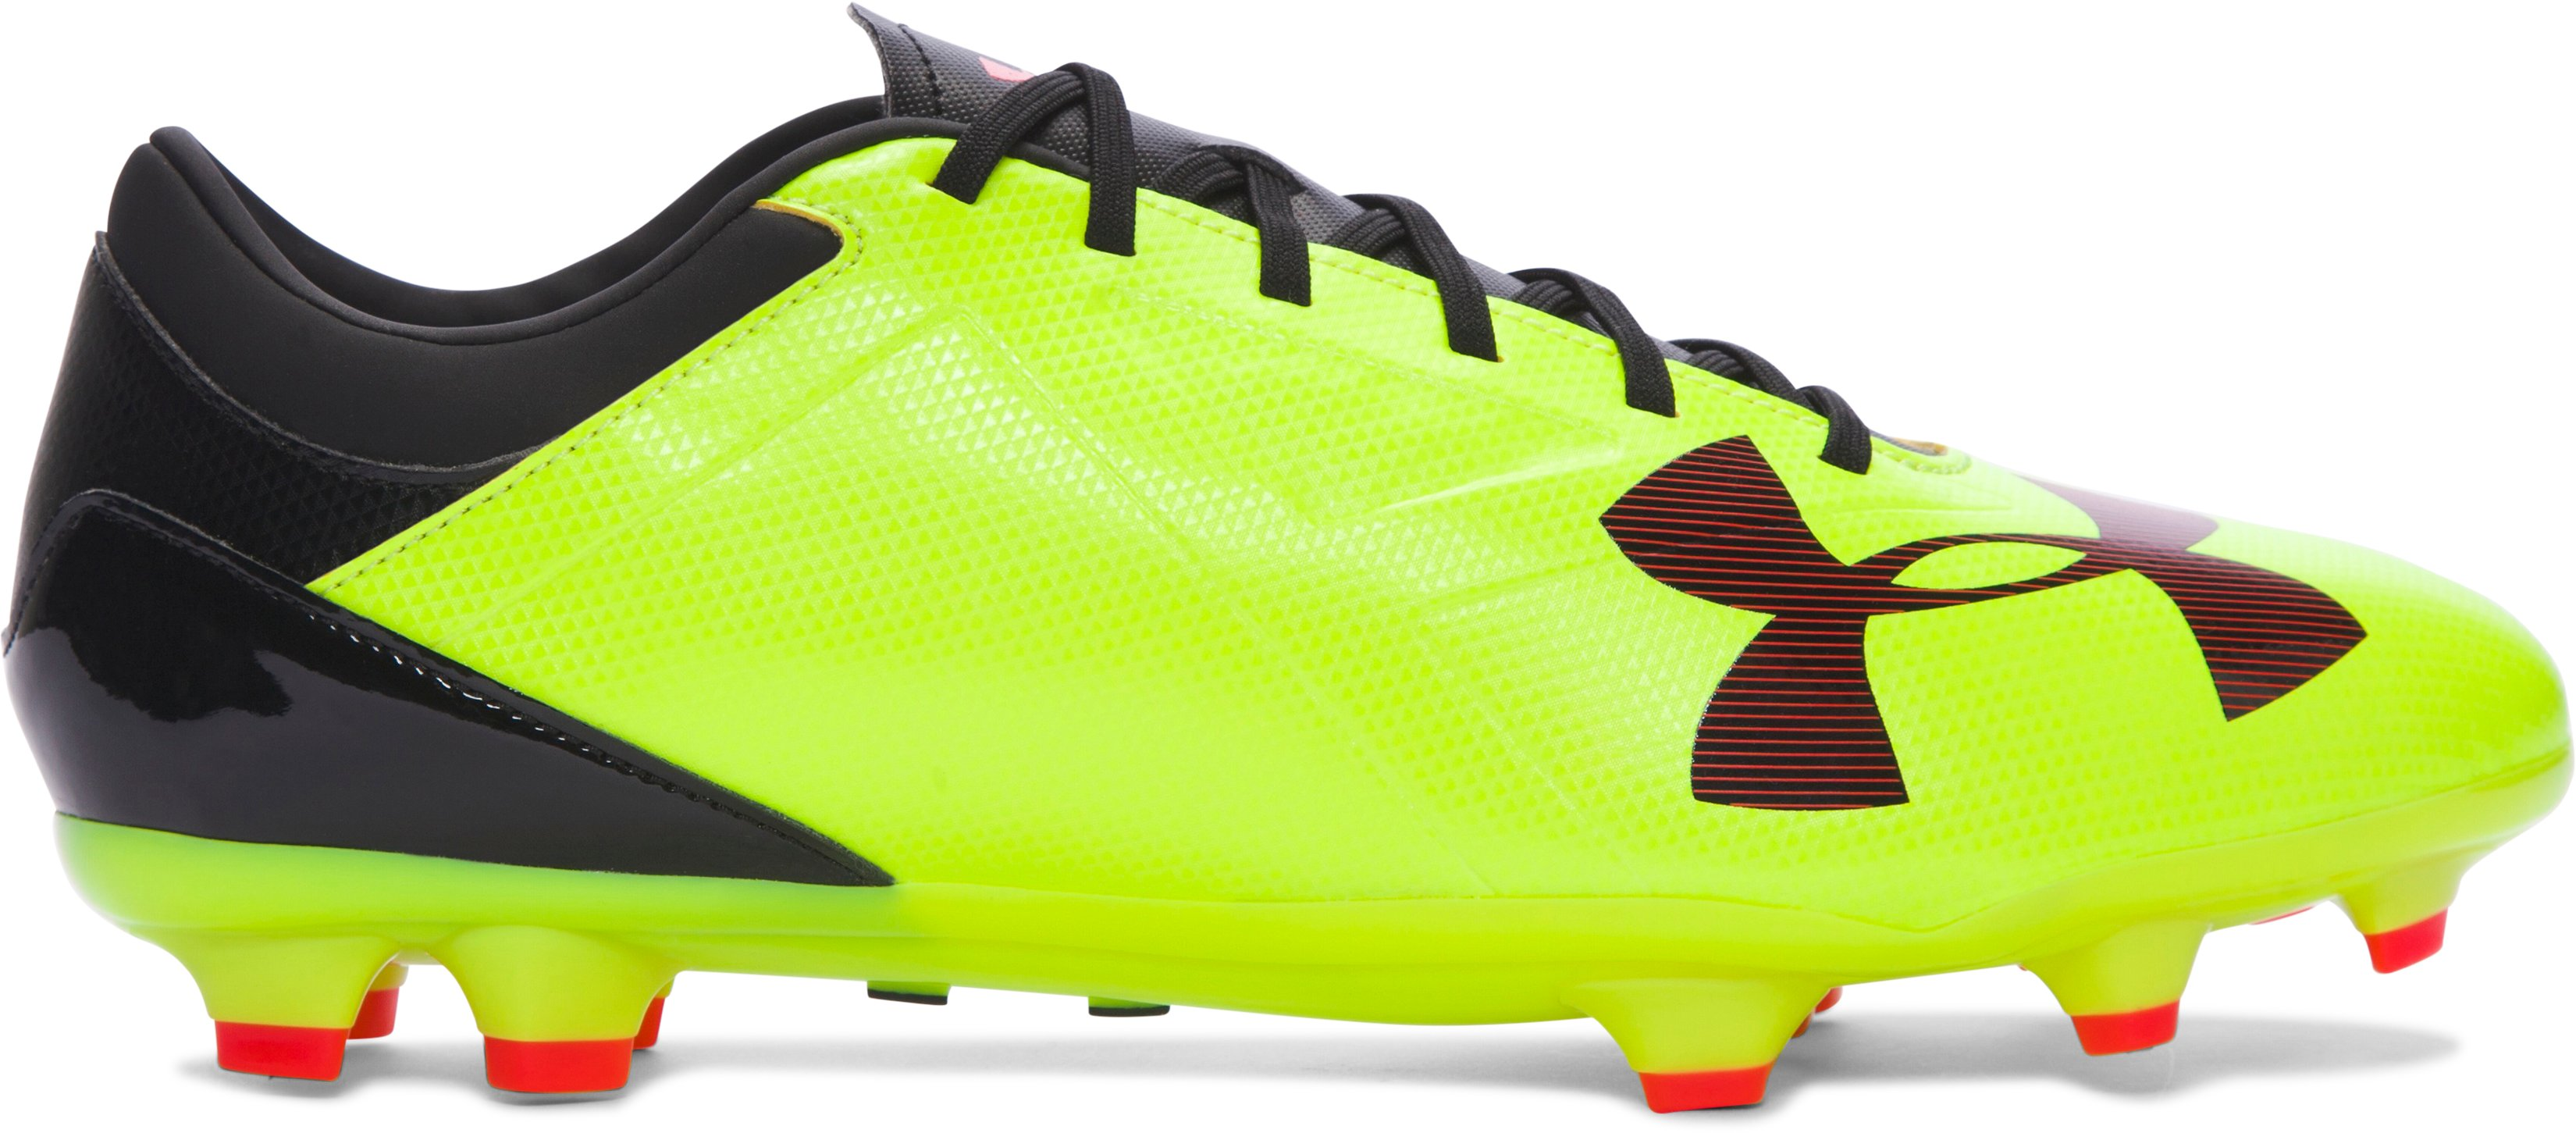 Men's UA Spotlight DL FG Soccer Cleats, High-Vis Yellow